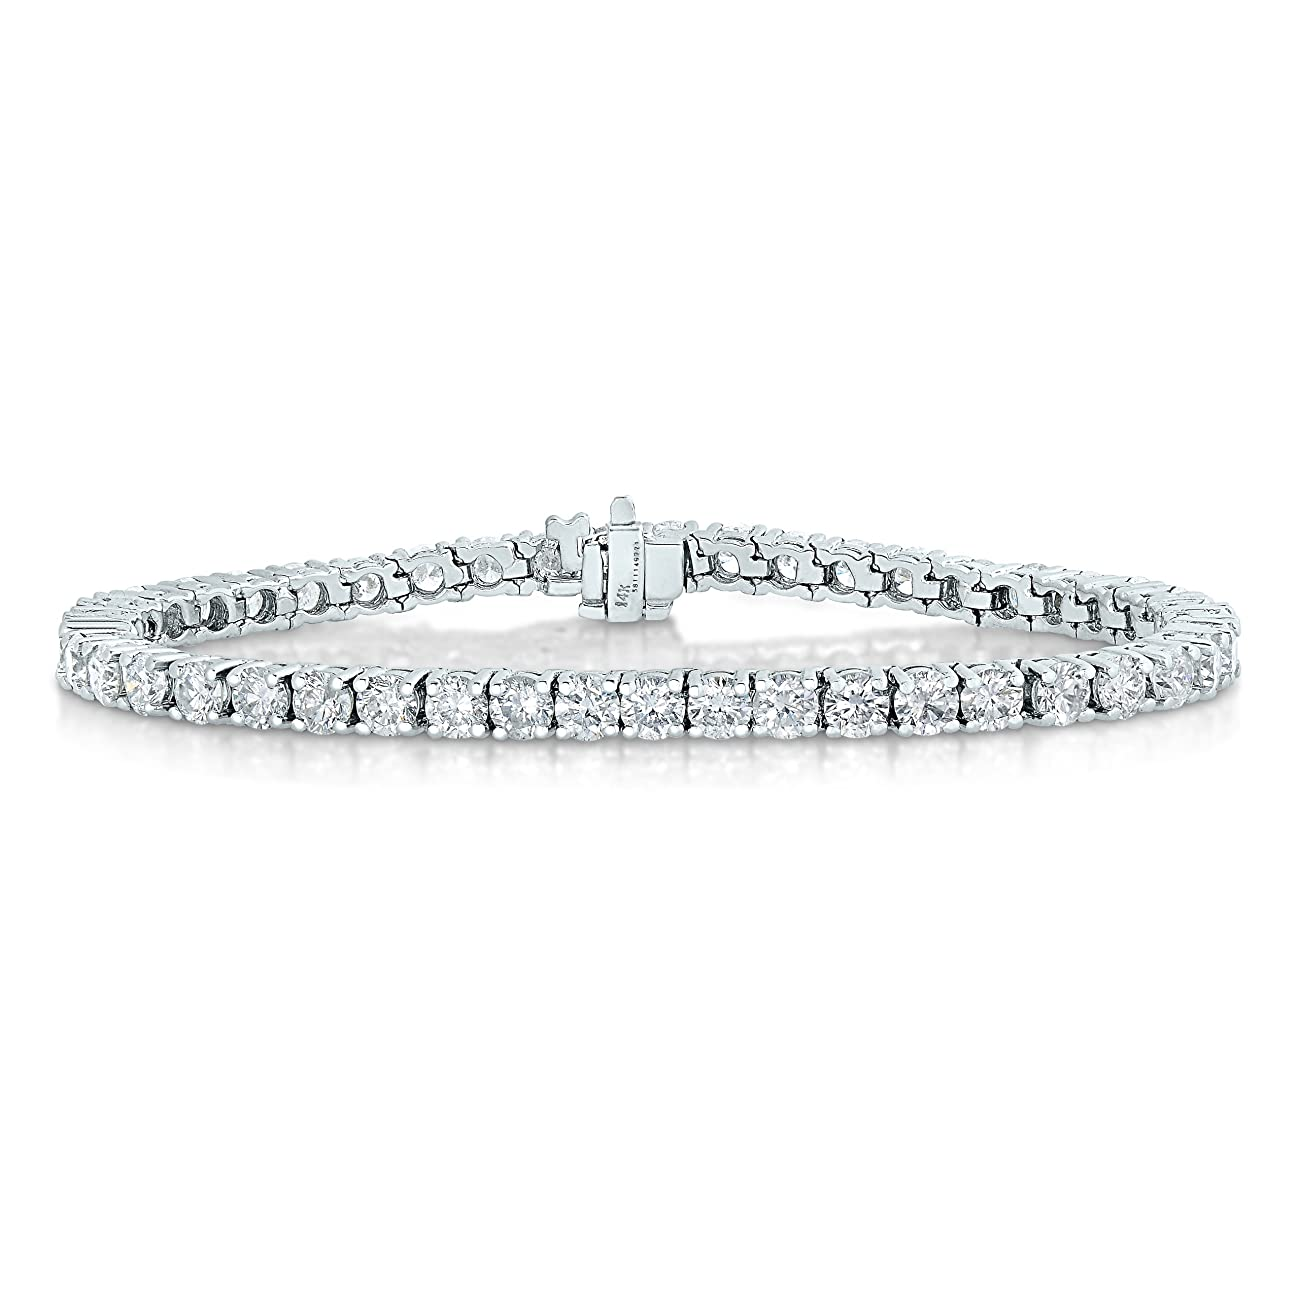 Vir Jewels 2 cttw Certified I1-I2 Clarity Diamond Bracelet 14K White Gold (H-I)